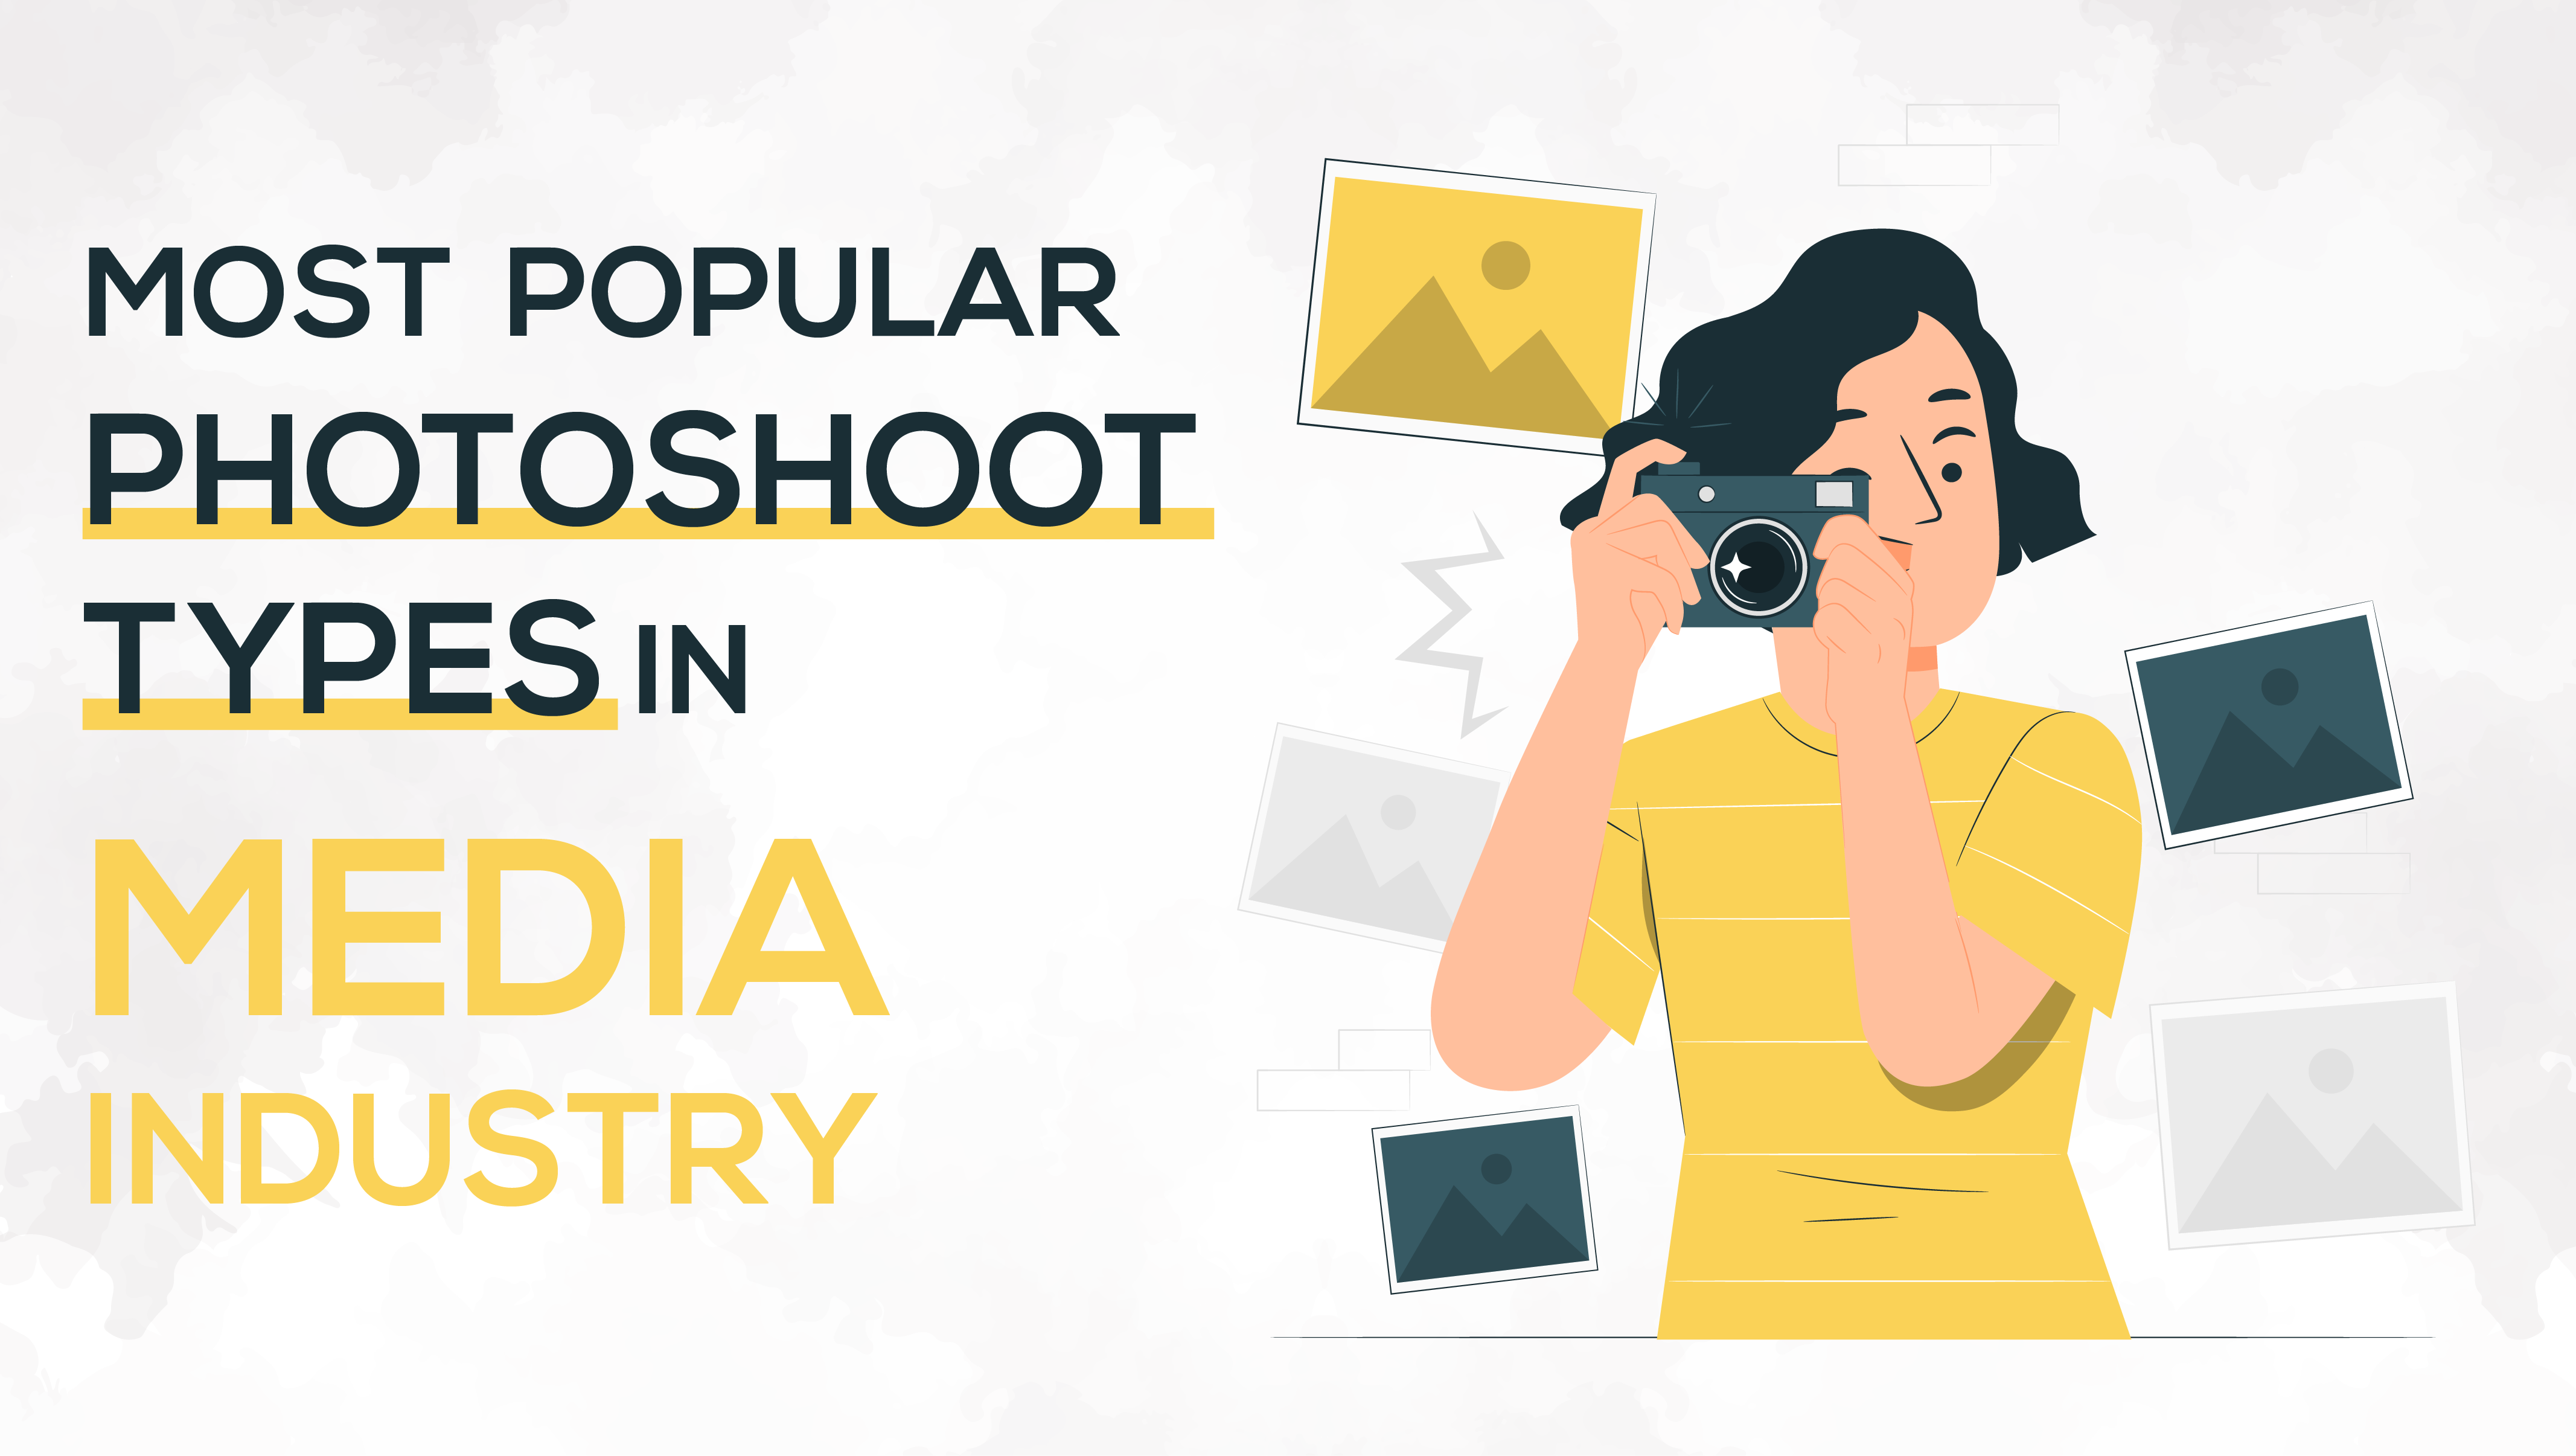 Most Popular Photoshoot Types in Media Industry